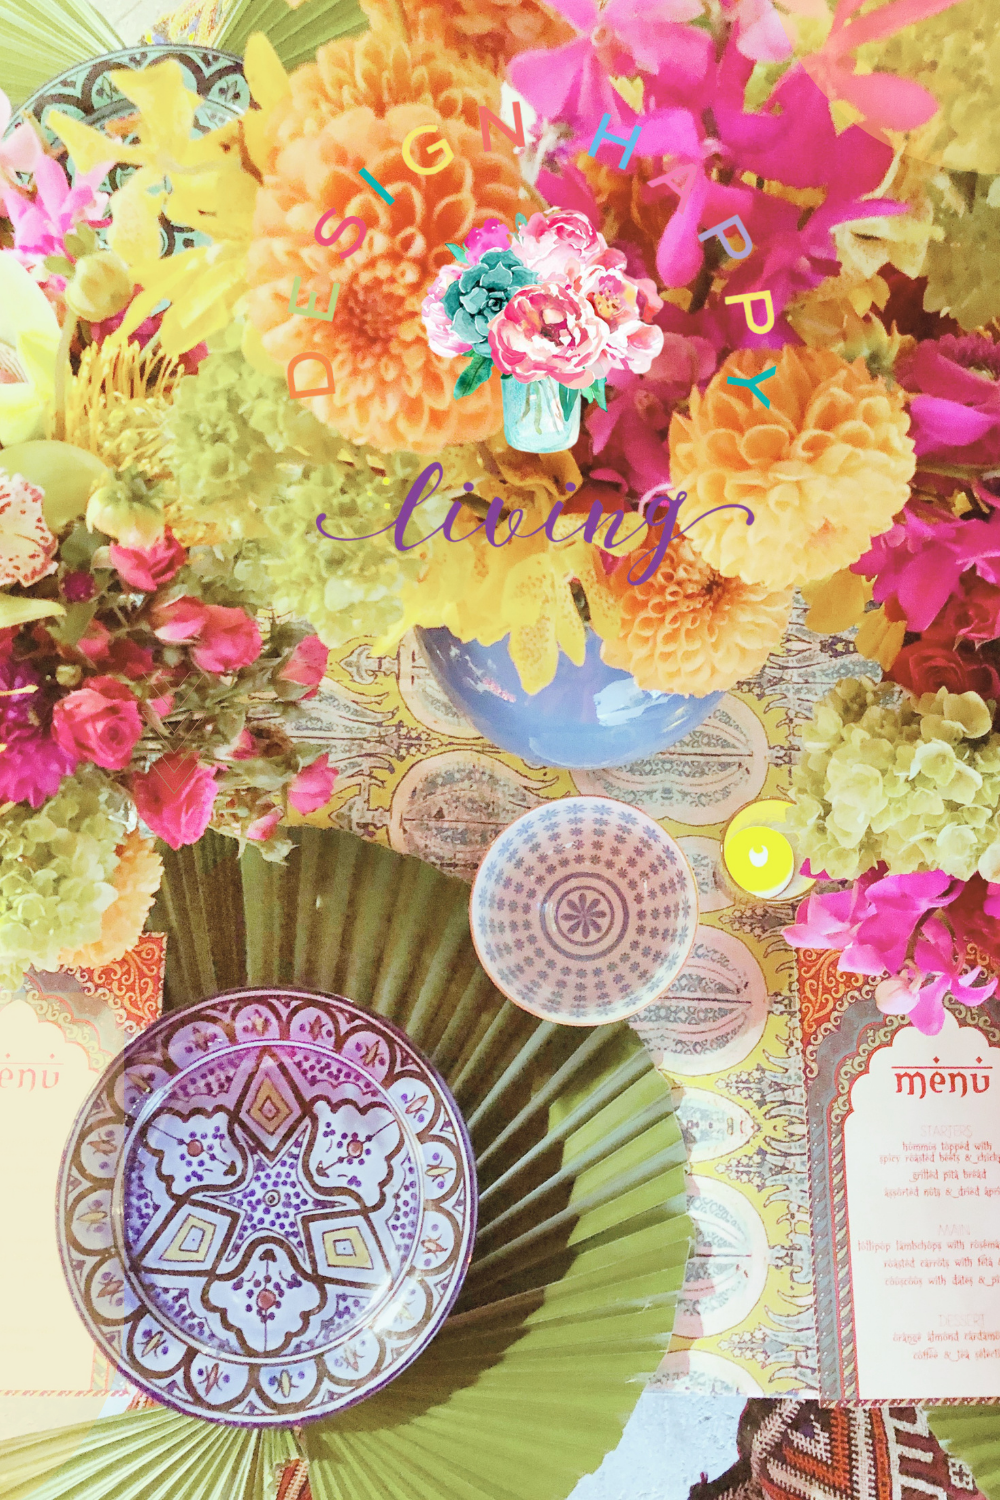 Tablescape with colorful flowers by Linda Holt